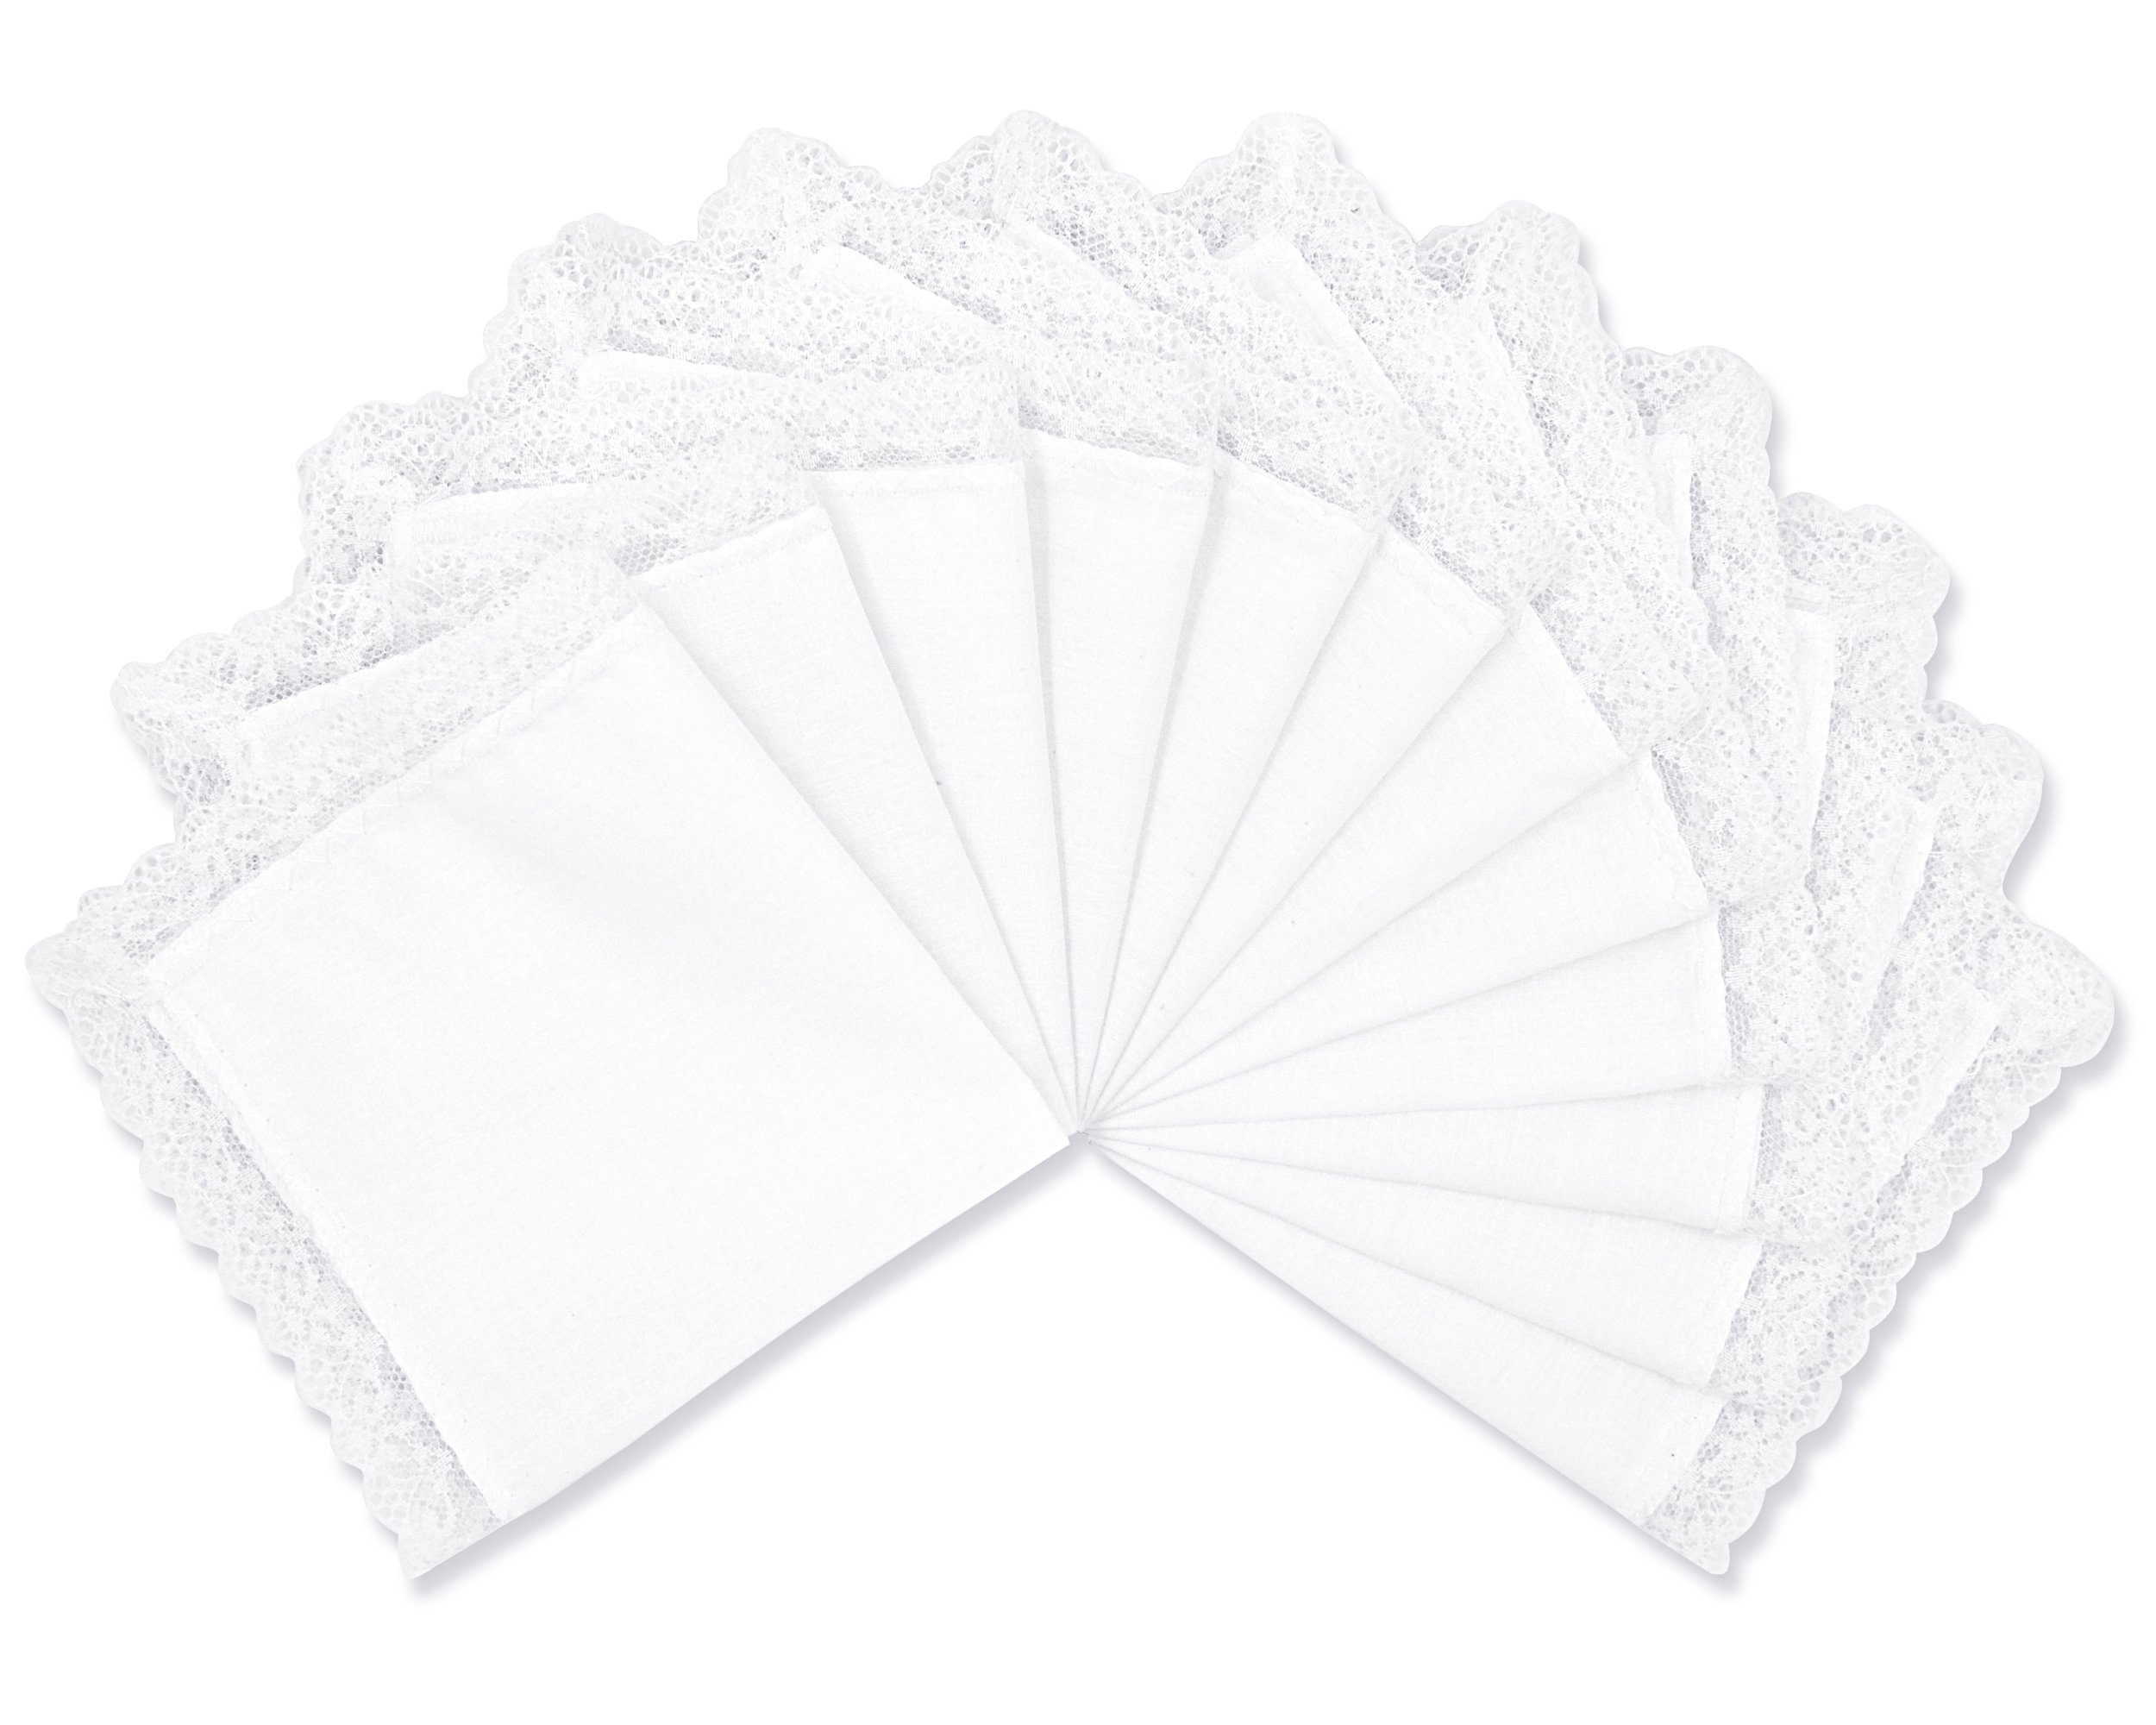 Milesky Solid White Wedding Cotton Handkerchiefs with Lace Edges Square 10 x 10'', LH03 (LH0312)